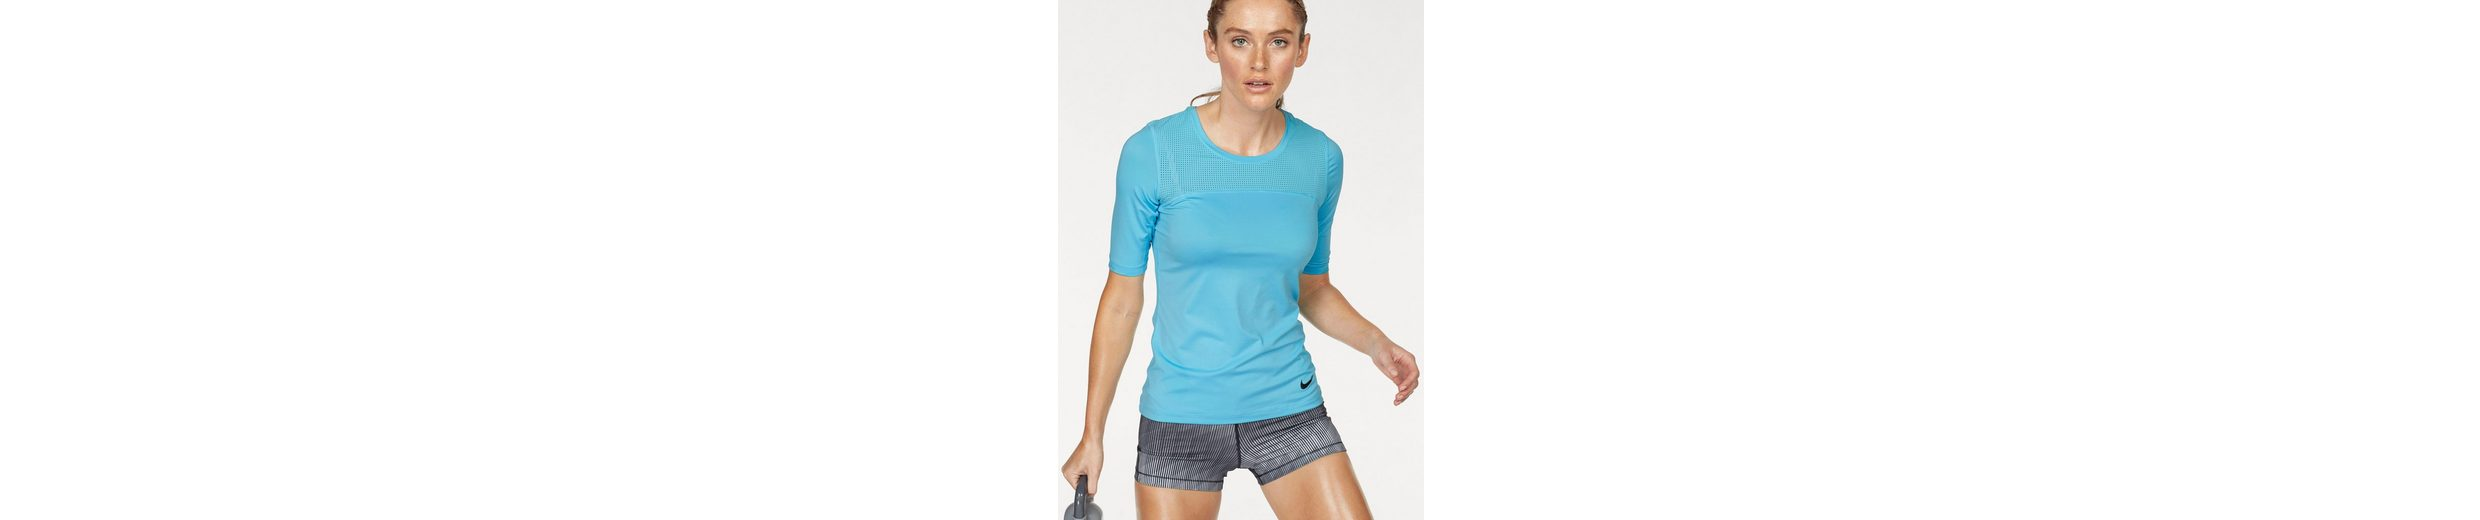 HYPERCOOL Nike Funktionsshirt TOP Funktionsshirt PRO NIKE WOMEN SHORTSLEEVE Nike WOMEN SHORTSLEEVE HYPERCOOL PRO Funktionsshirt TOP Nike NIKE RwftqpFfx